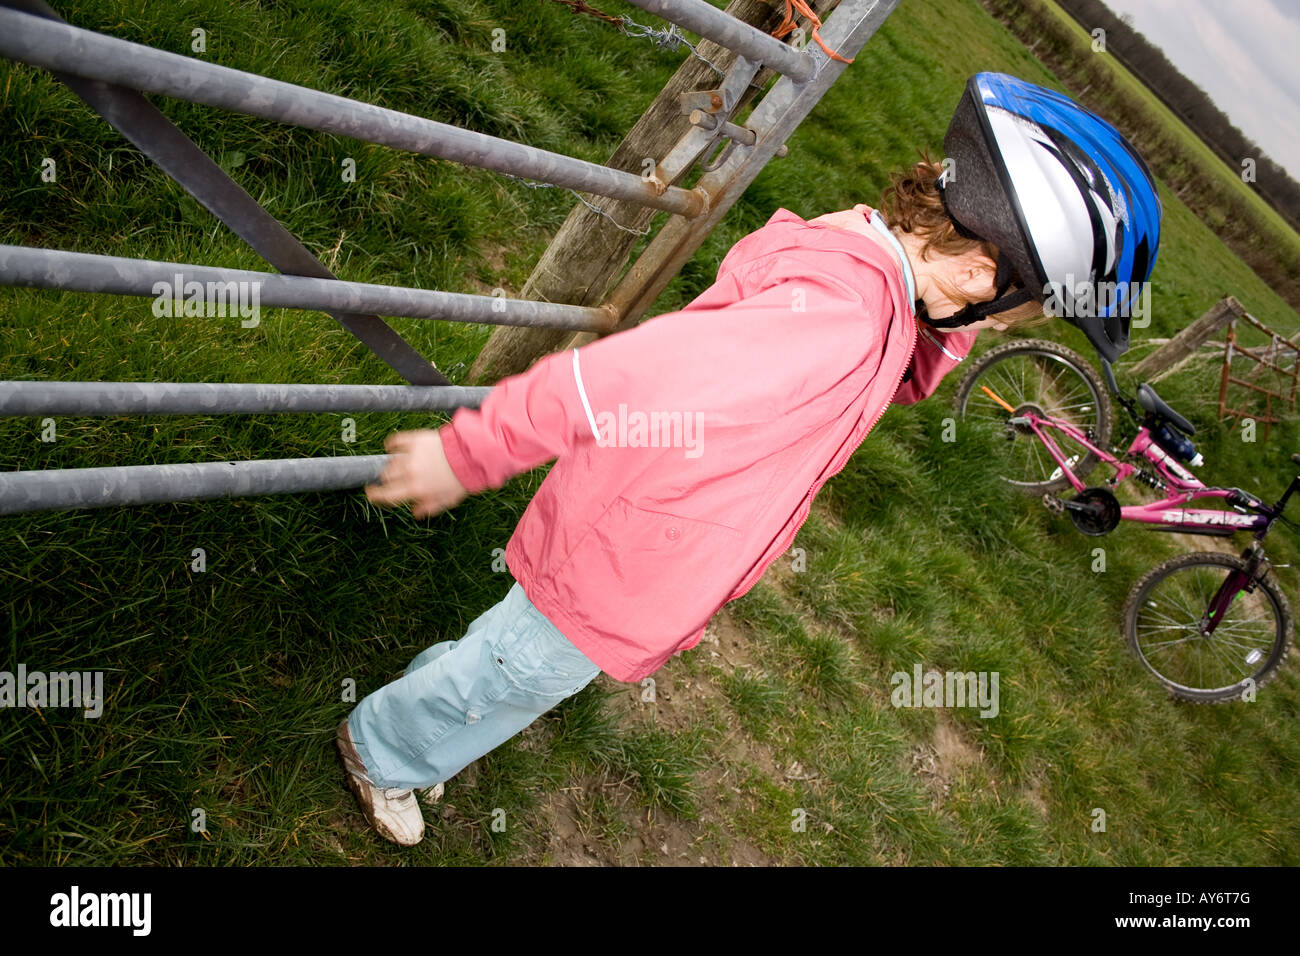 young girl with bike in field - Stock Image